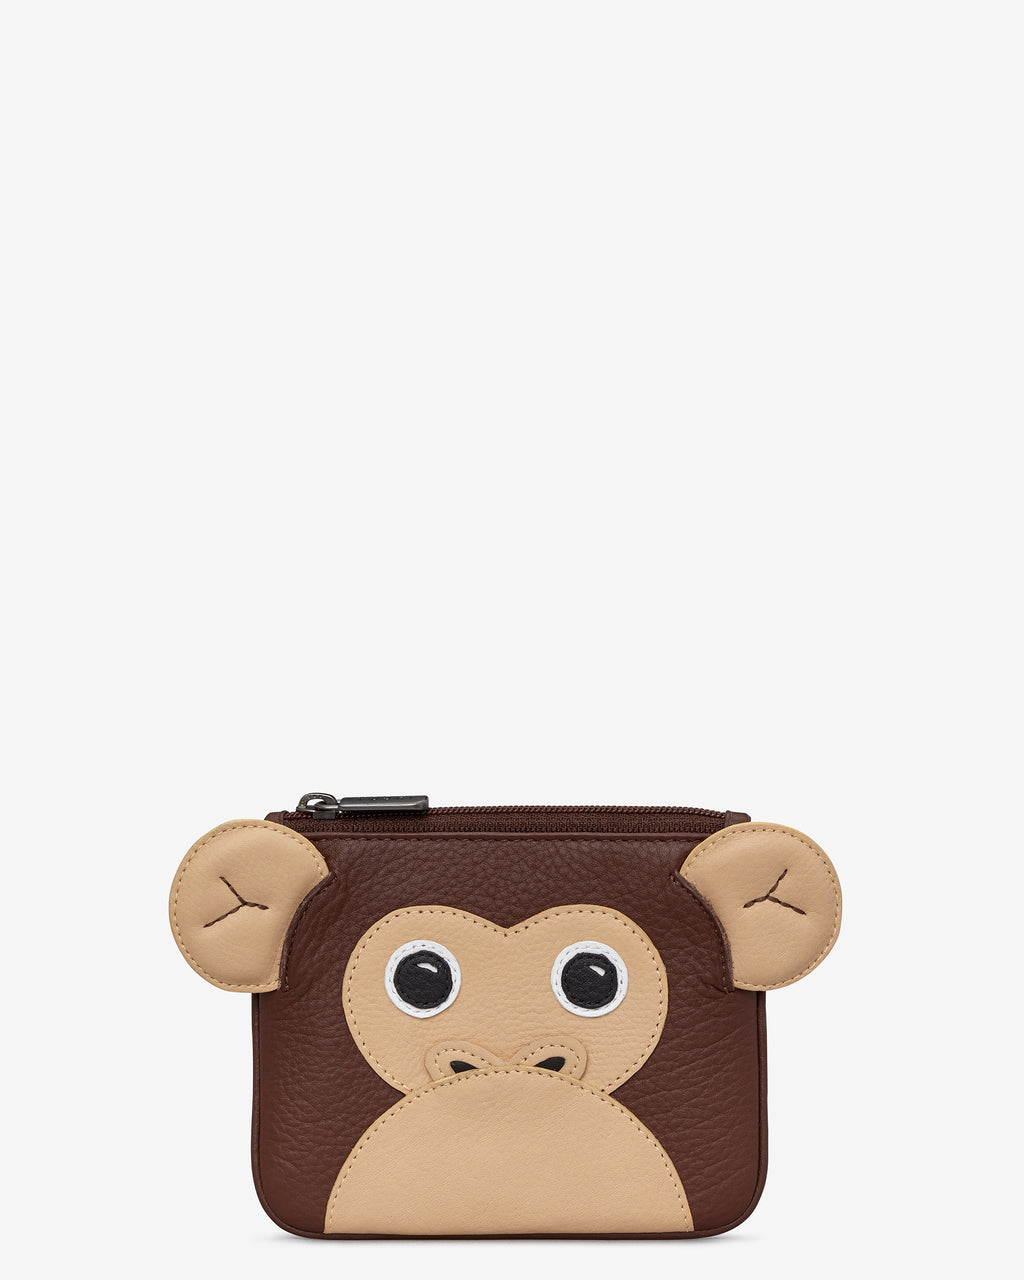 Marcel the Monkey Zip Top Leather Purse